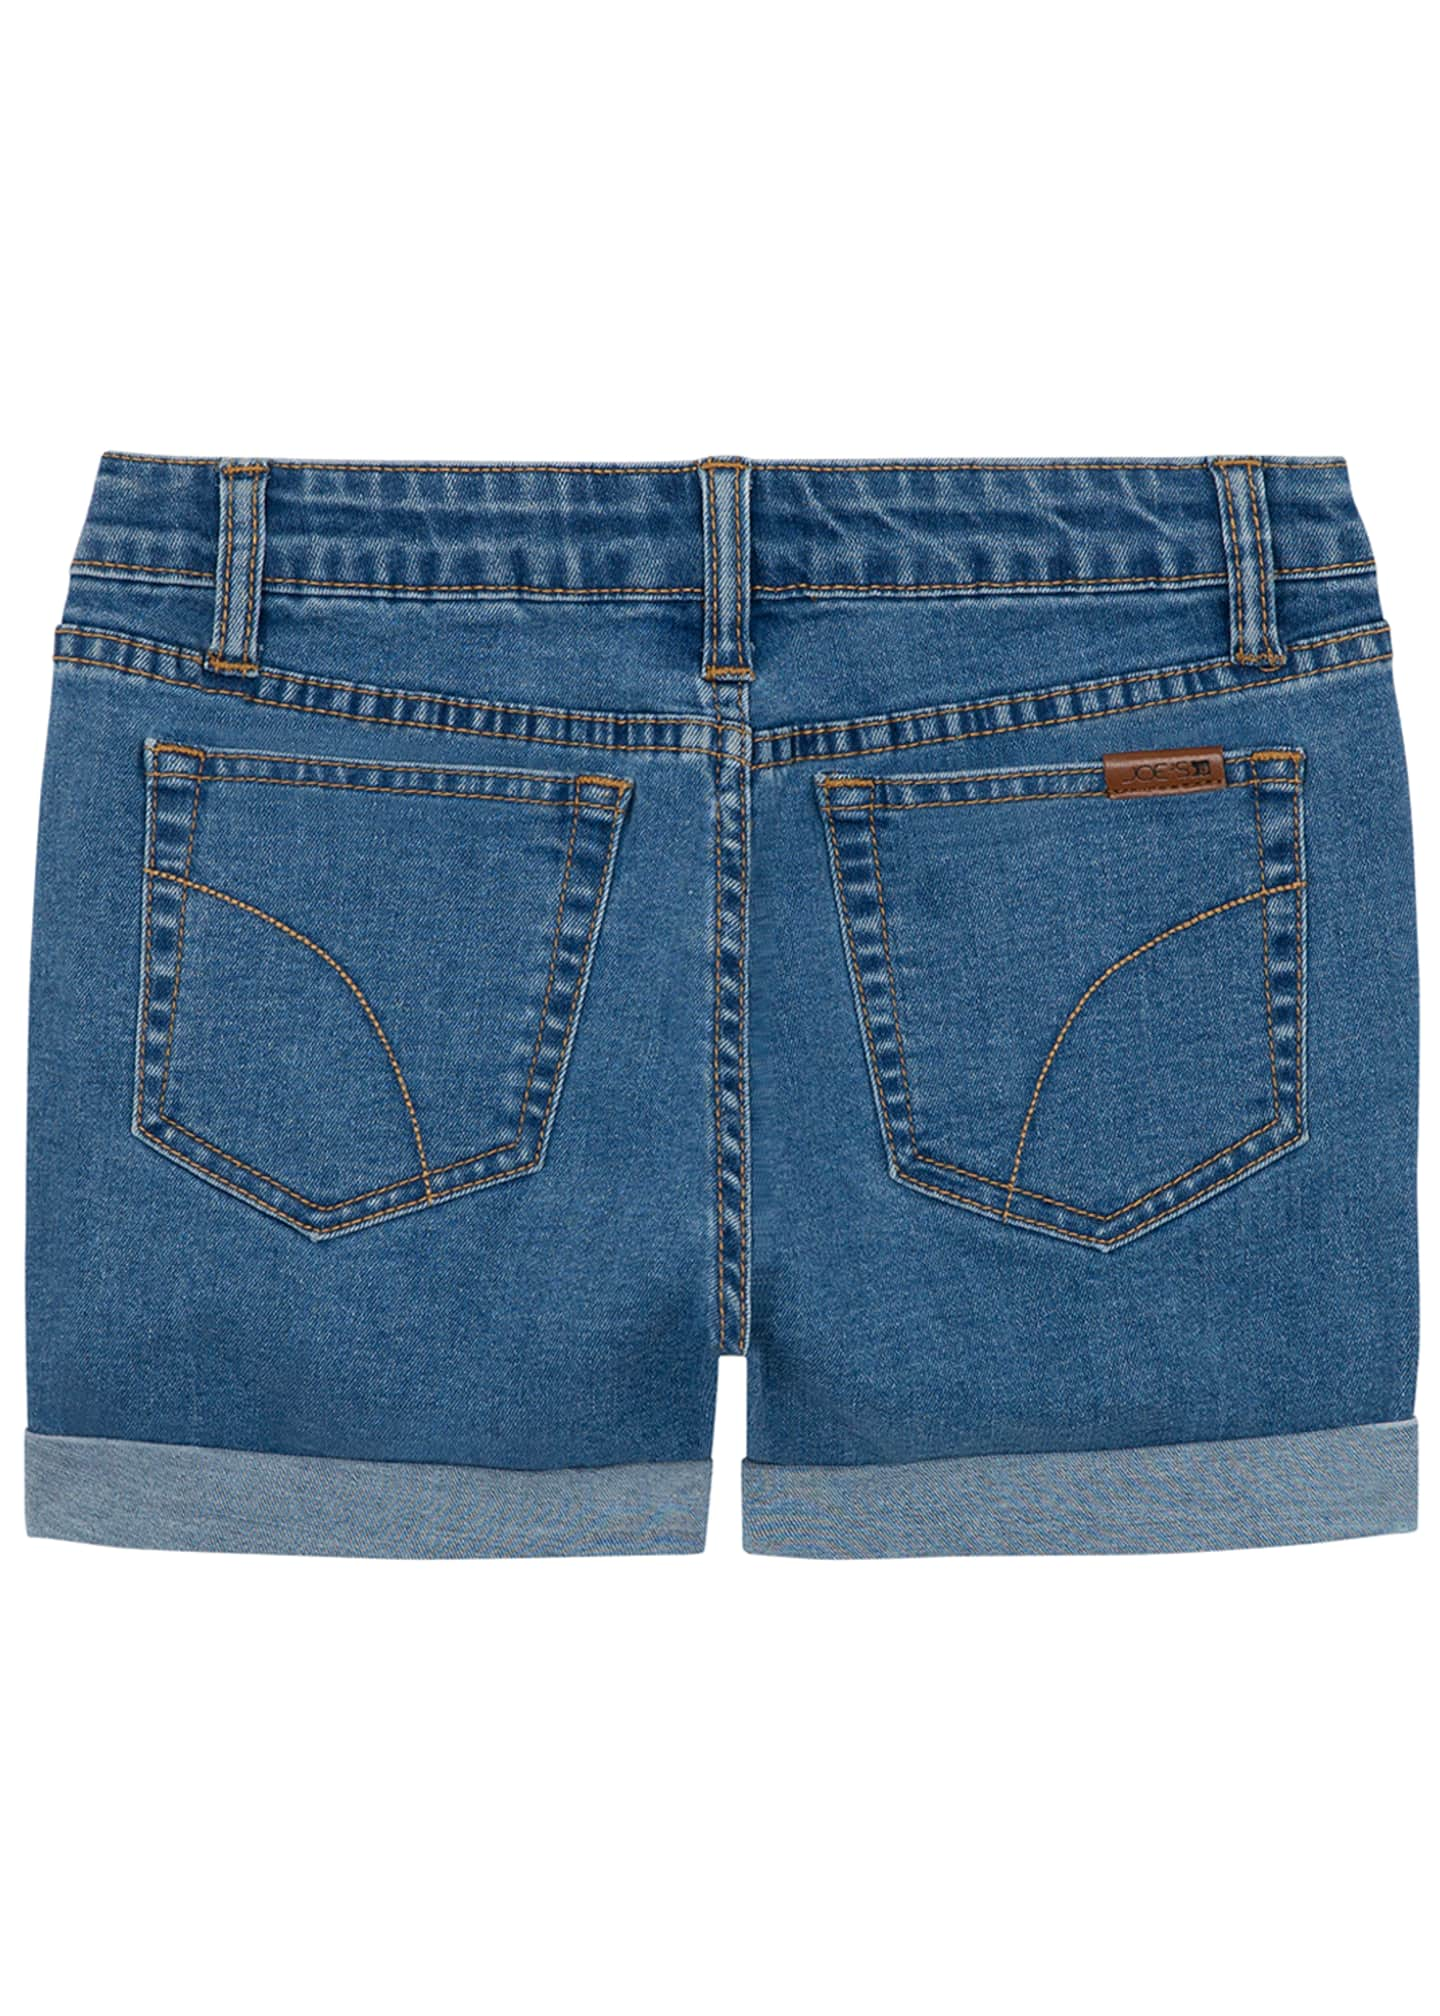 Image 2 of 2: Girl's High Rise Button Fly Denim Shorts, Size 7-16